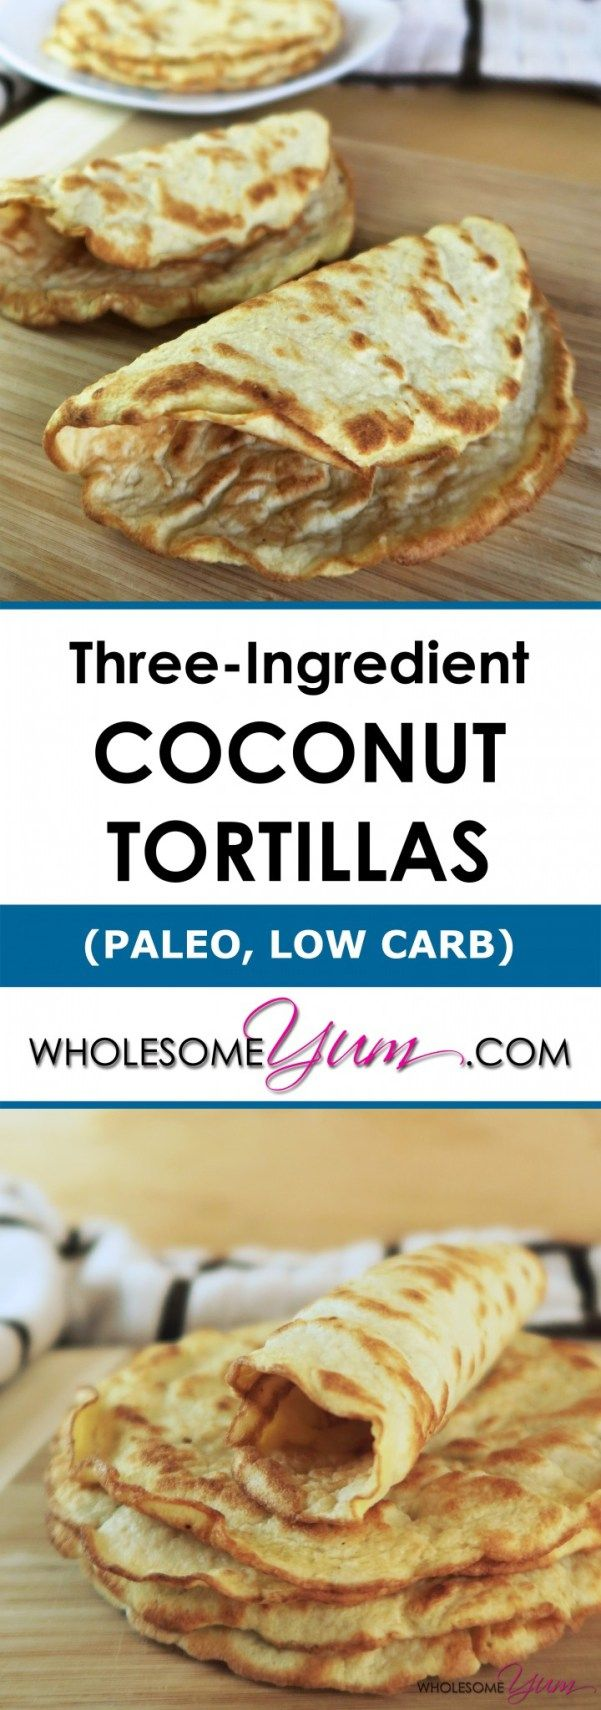 Three-Ingredient Paleo Tortillas